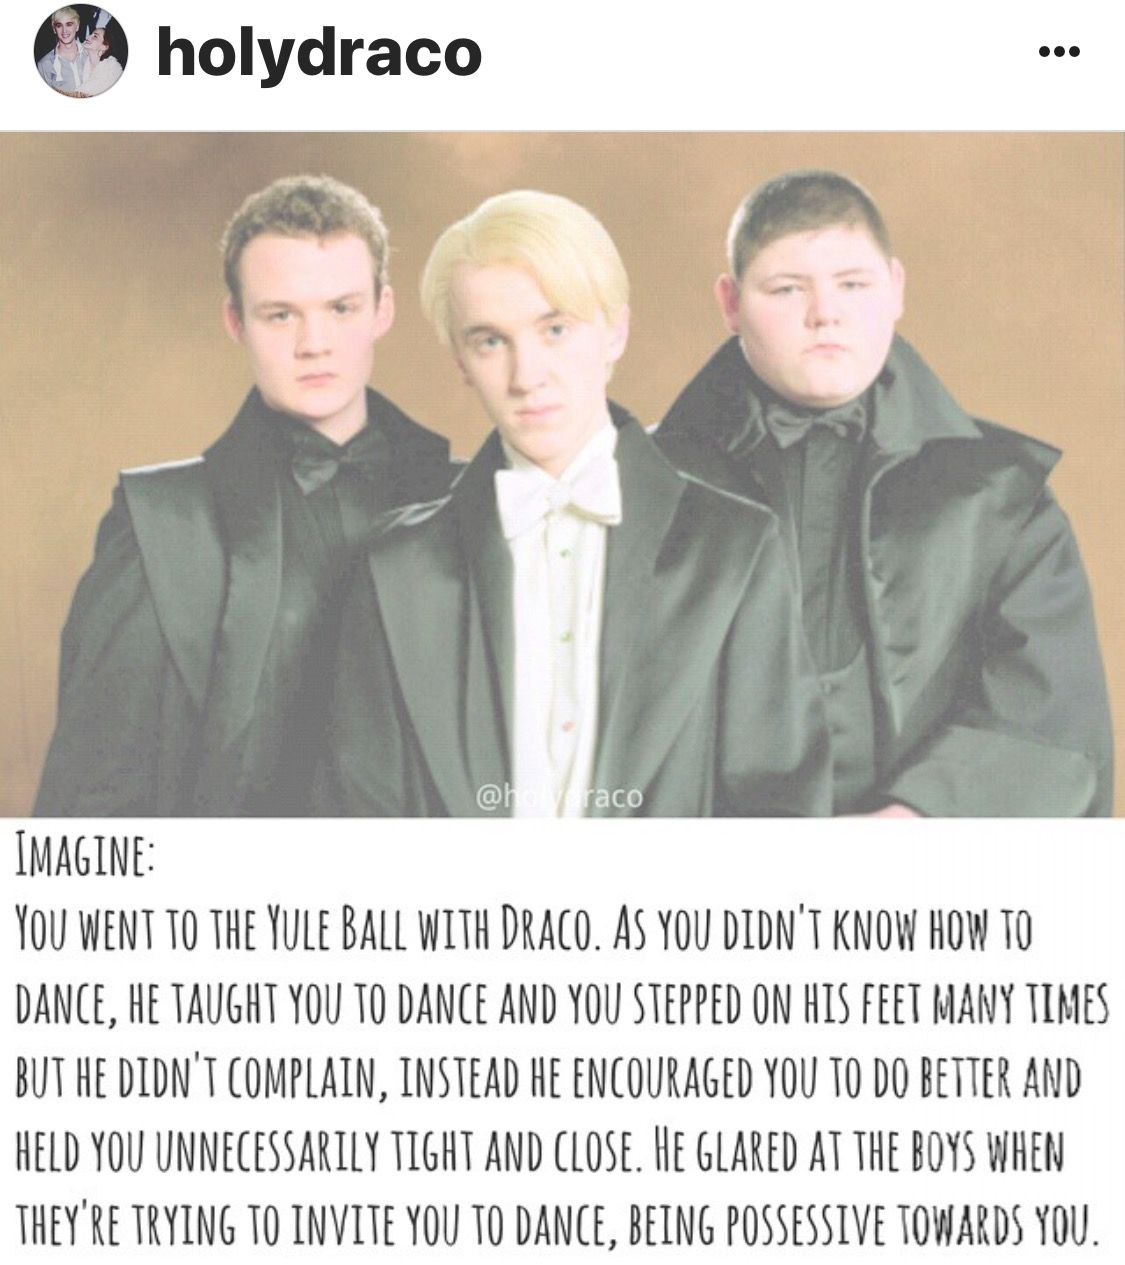 d6144089de4e097f84b2ff7856ced7ef pin by jessica on draco malfoy pinterest harry potter, draco and